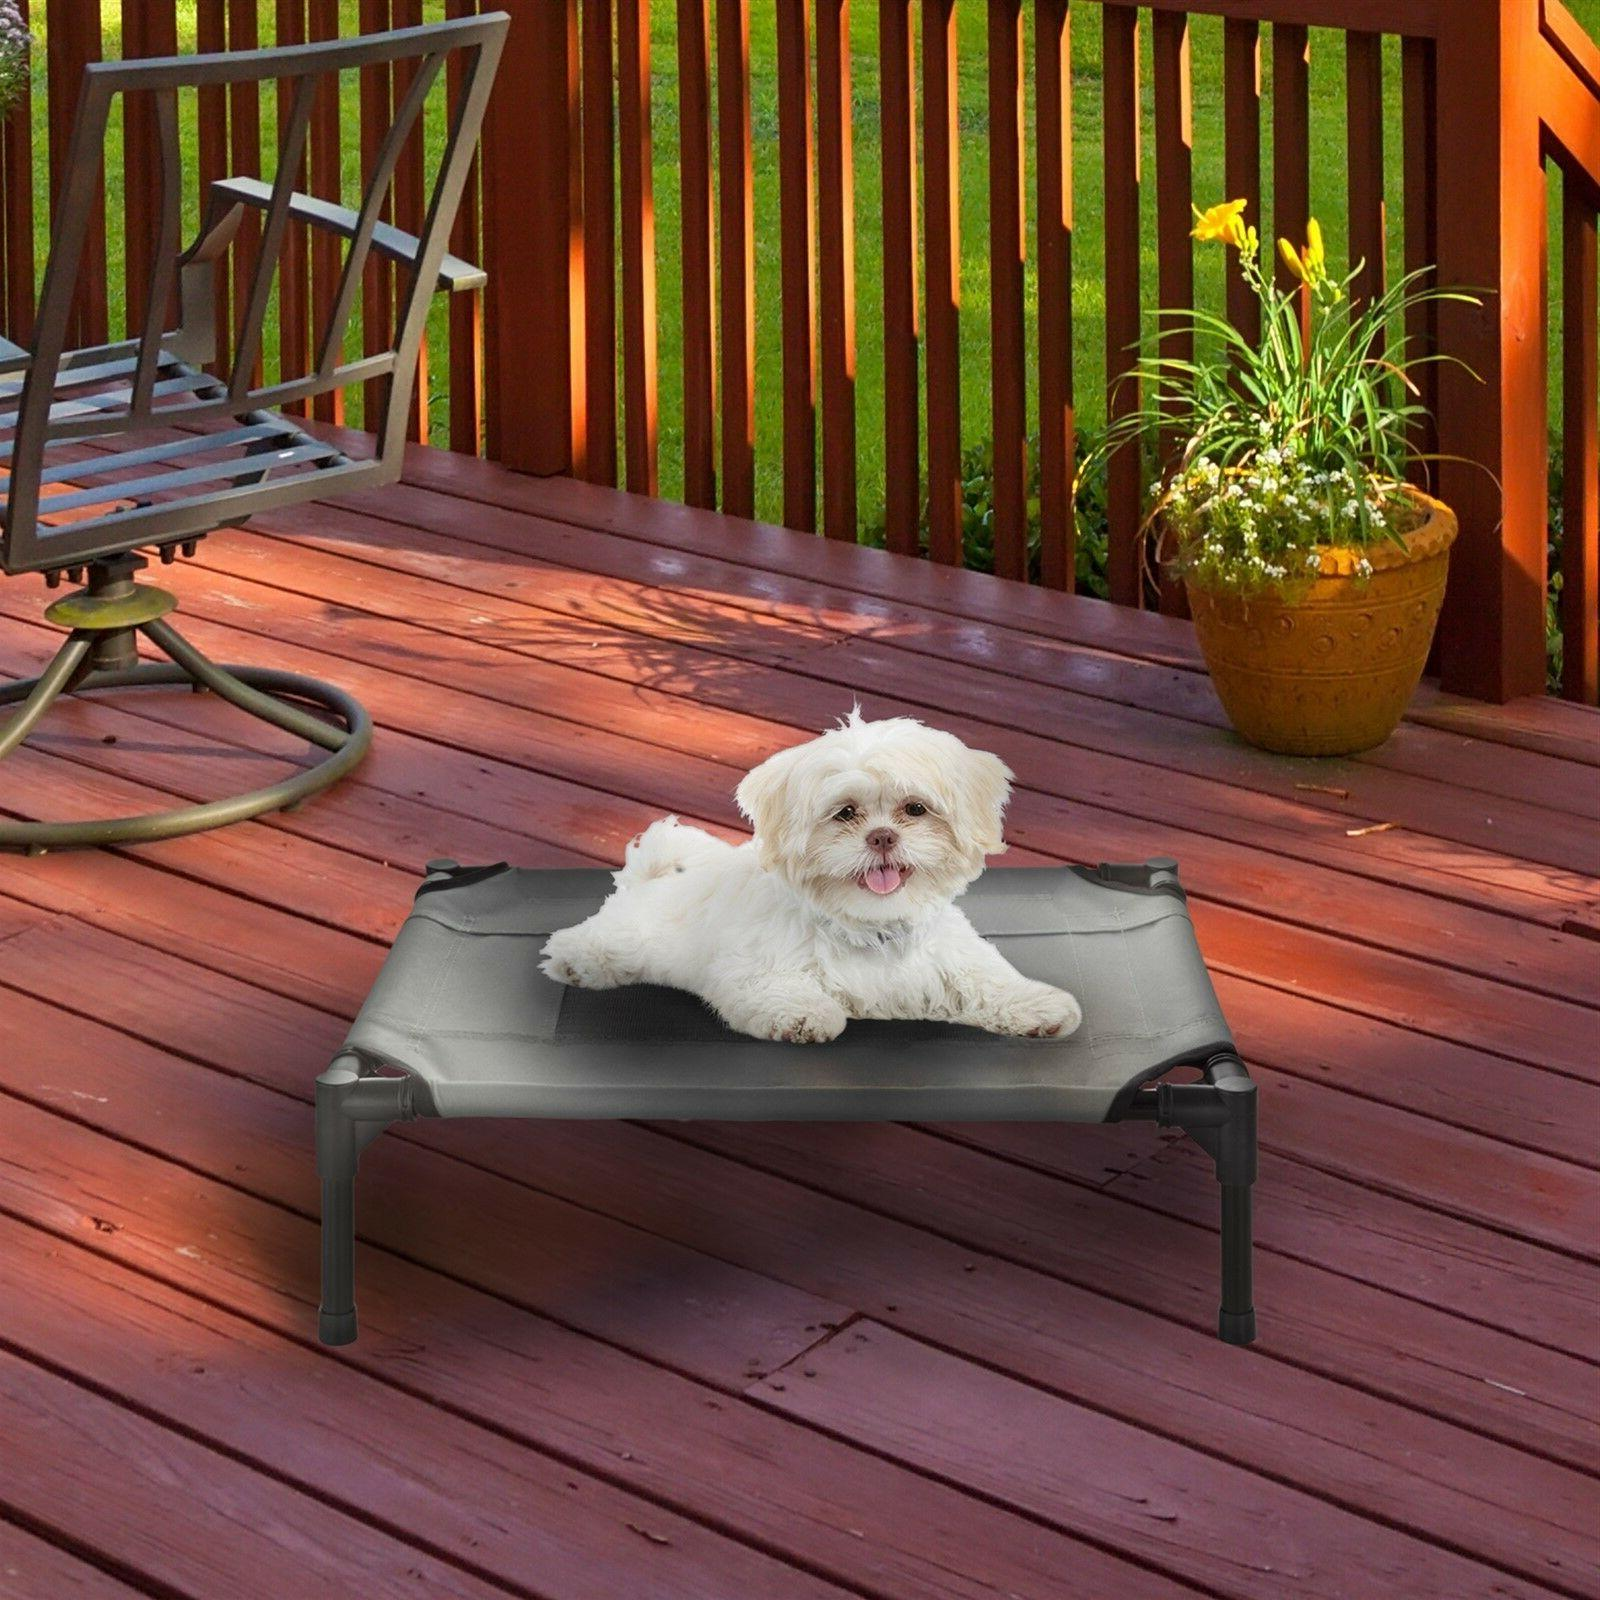 XSmall SM Dog Bed Indoor Outdoor Raised Elevated 24 18